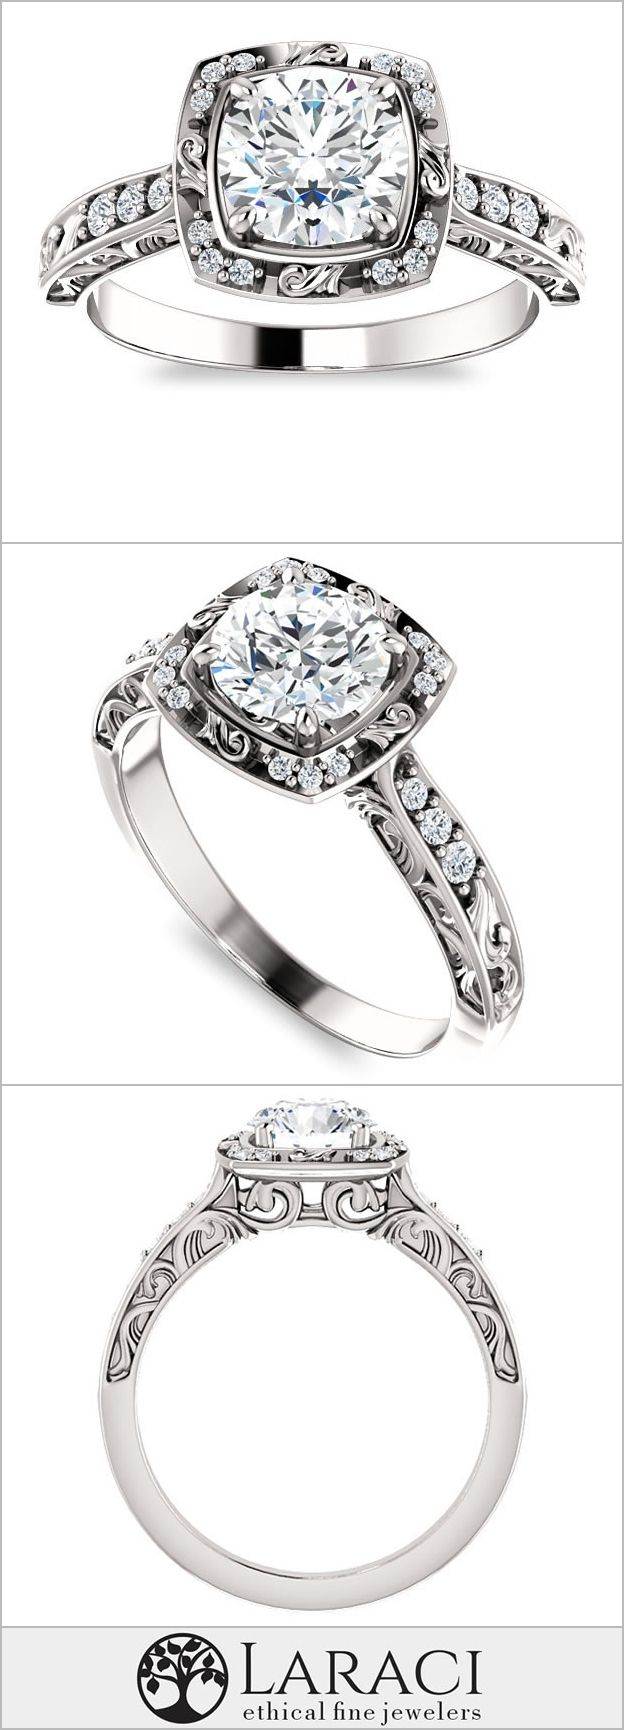 Moissanite 1ct (6.5mm) Round Forever One Near Colorless